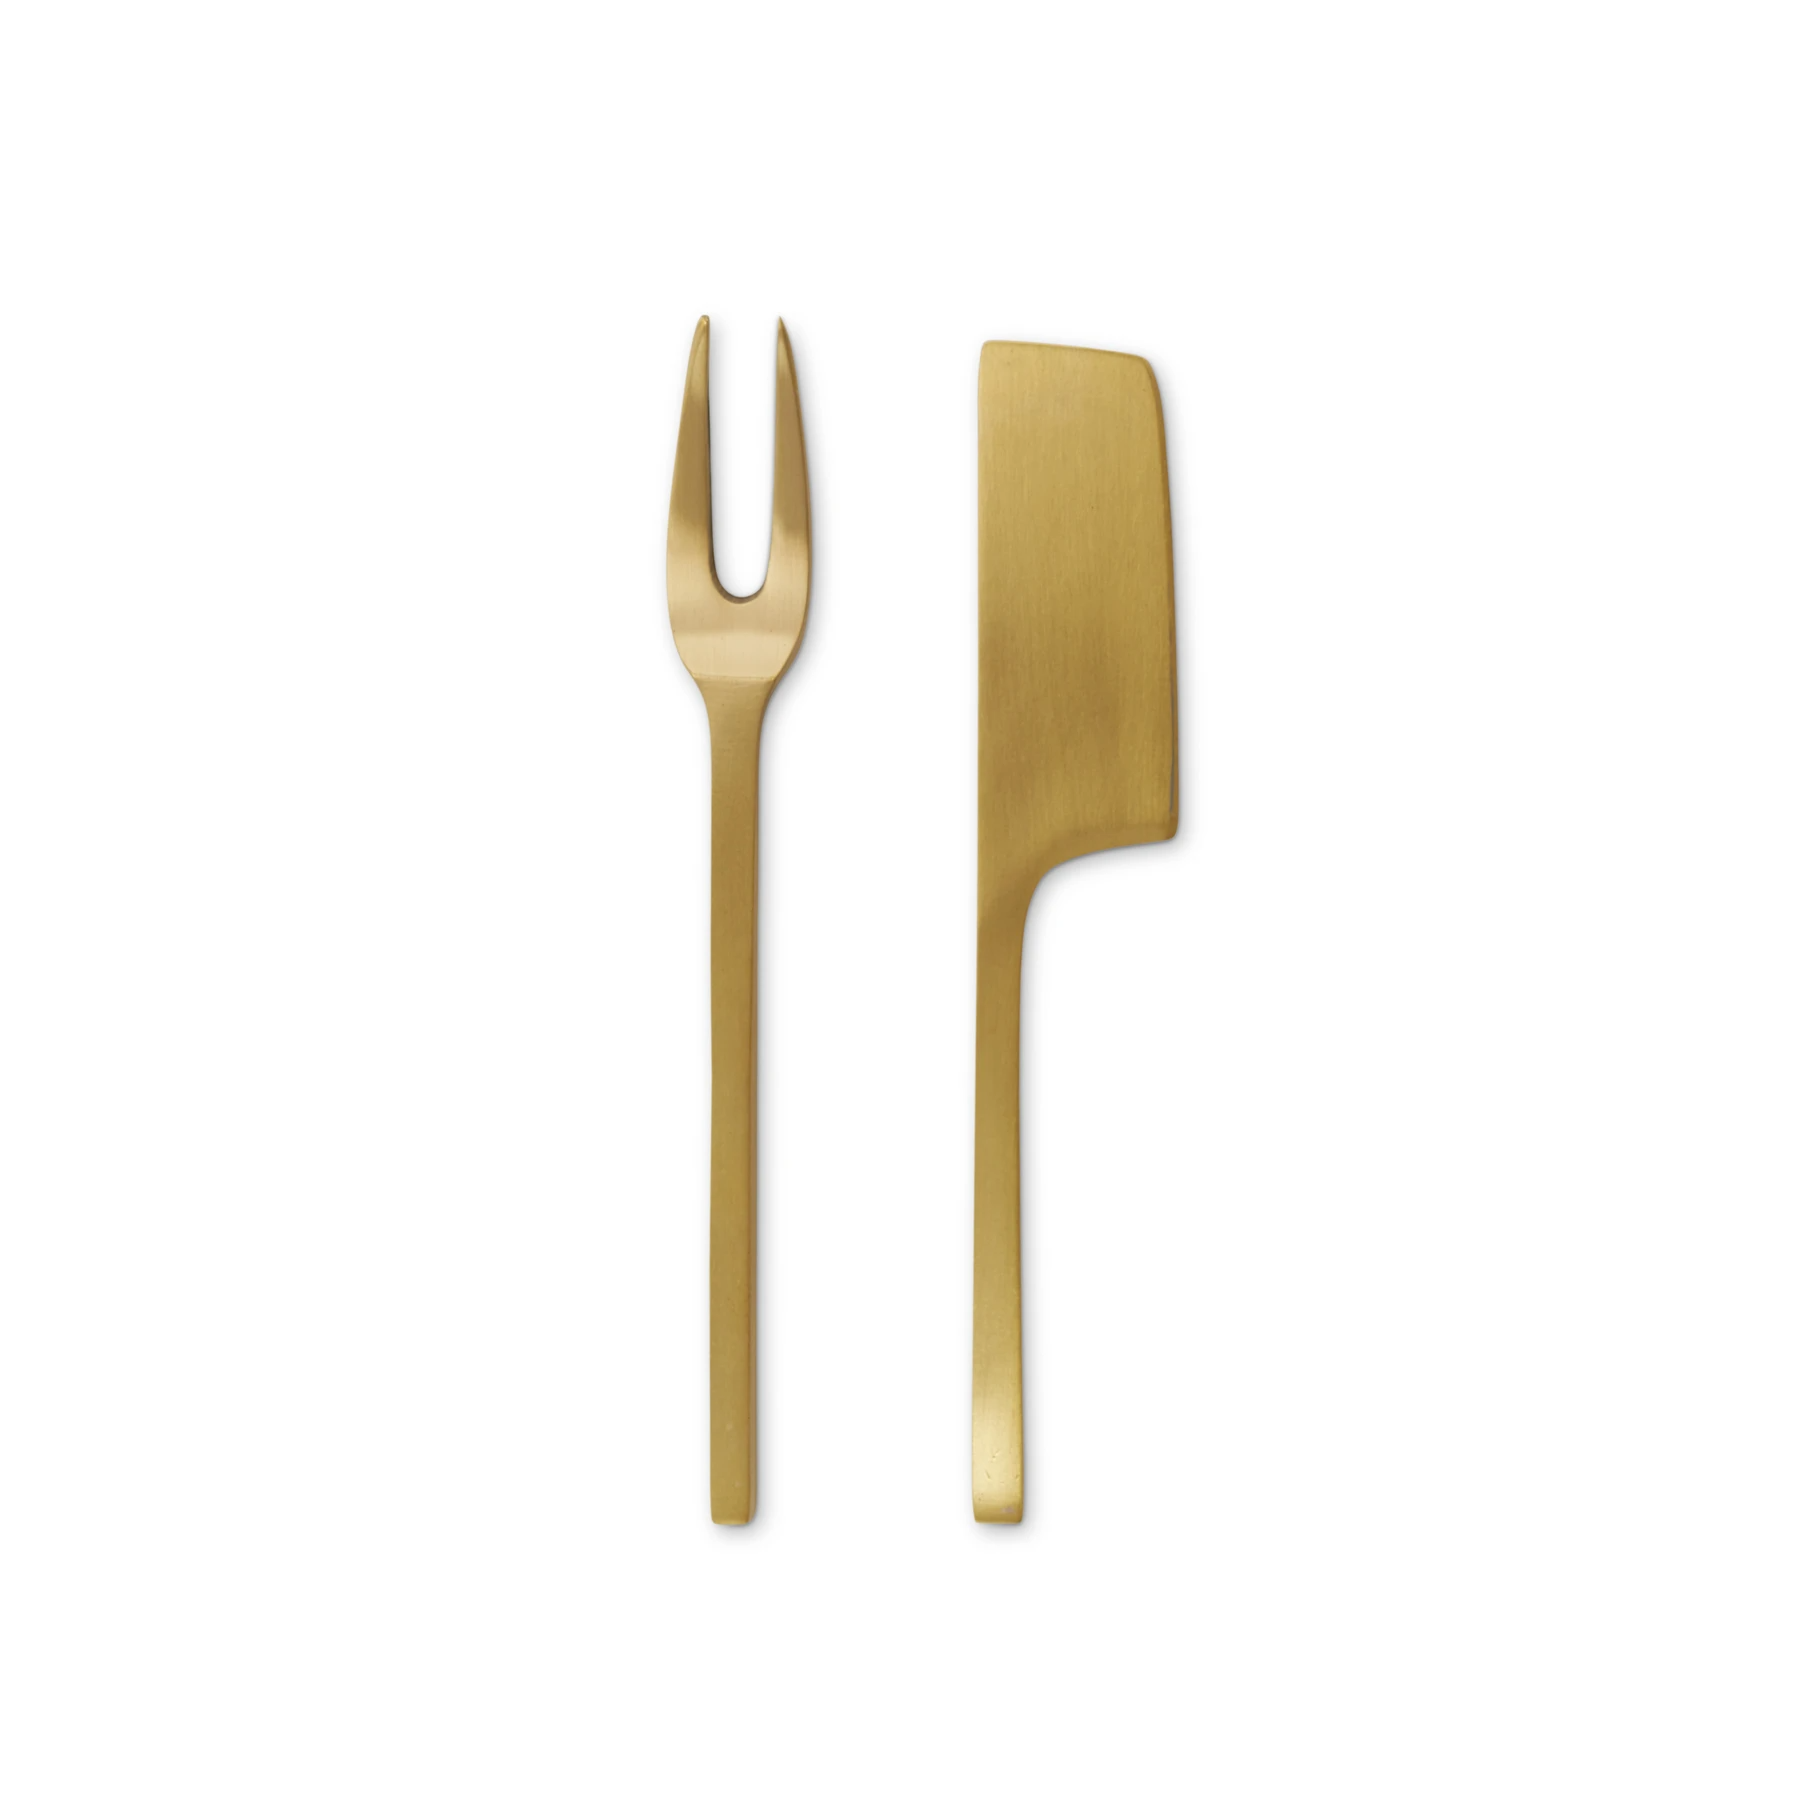 Heritage Brass Cheese Tools - Set of 2